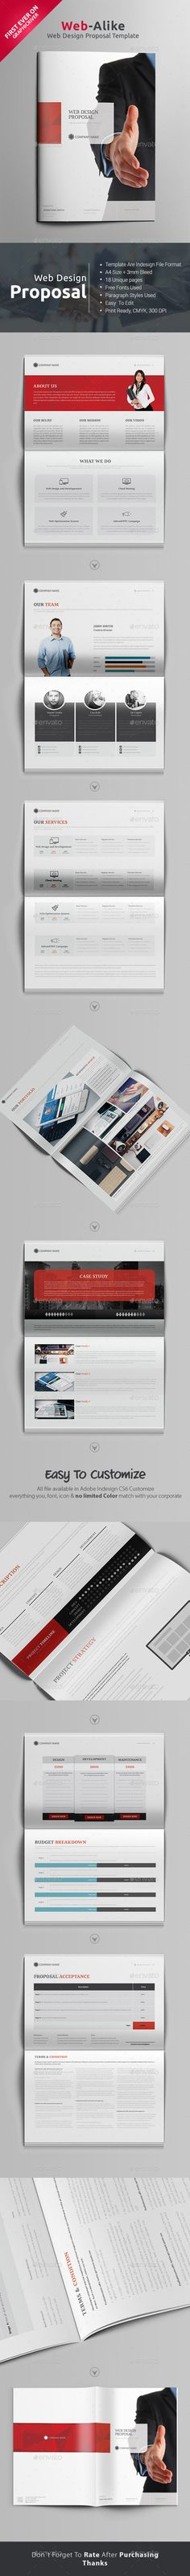 Web Design Proposal 18 Pages Template #design Download: http://graphicriver.net/item/web-design-proposal/13078487?ref=ksioks